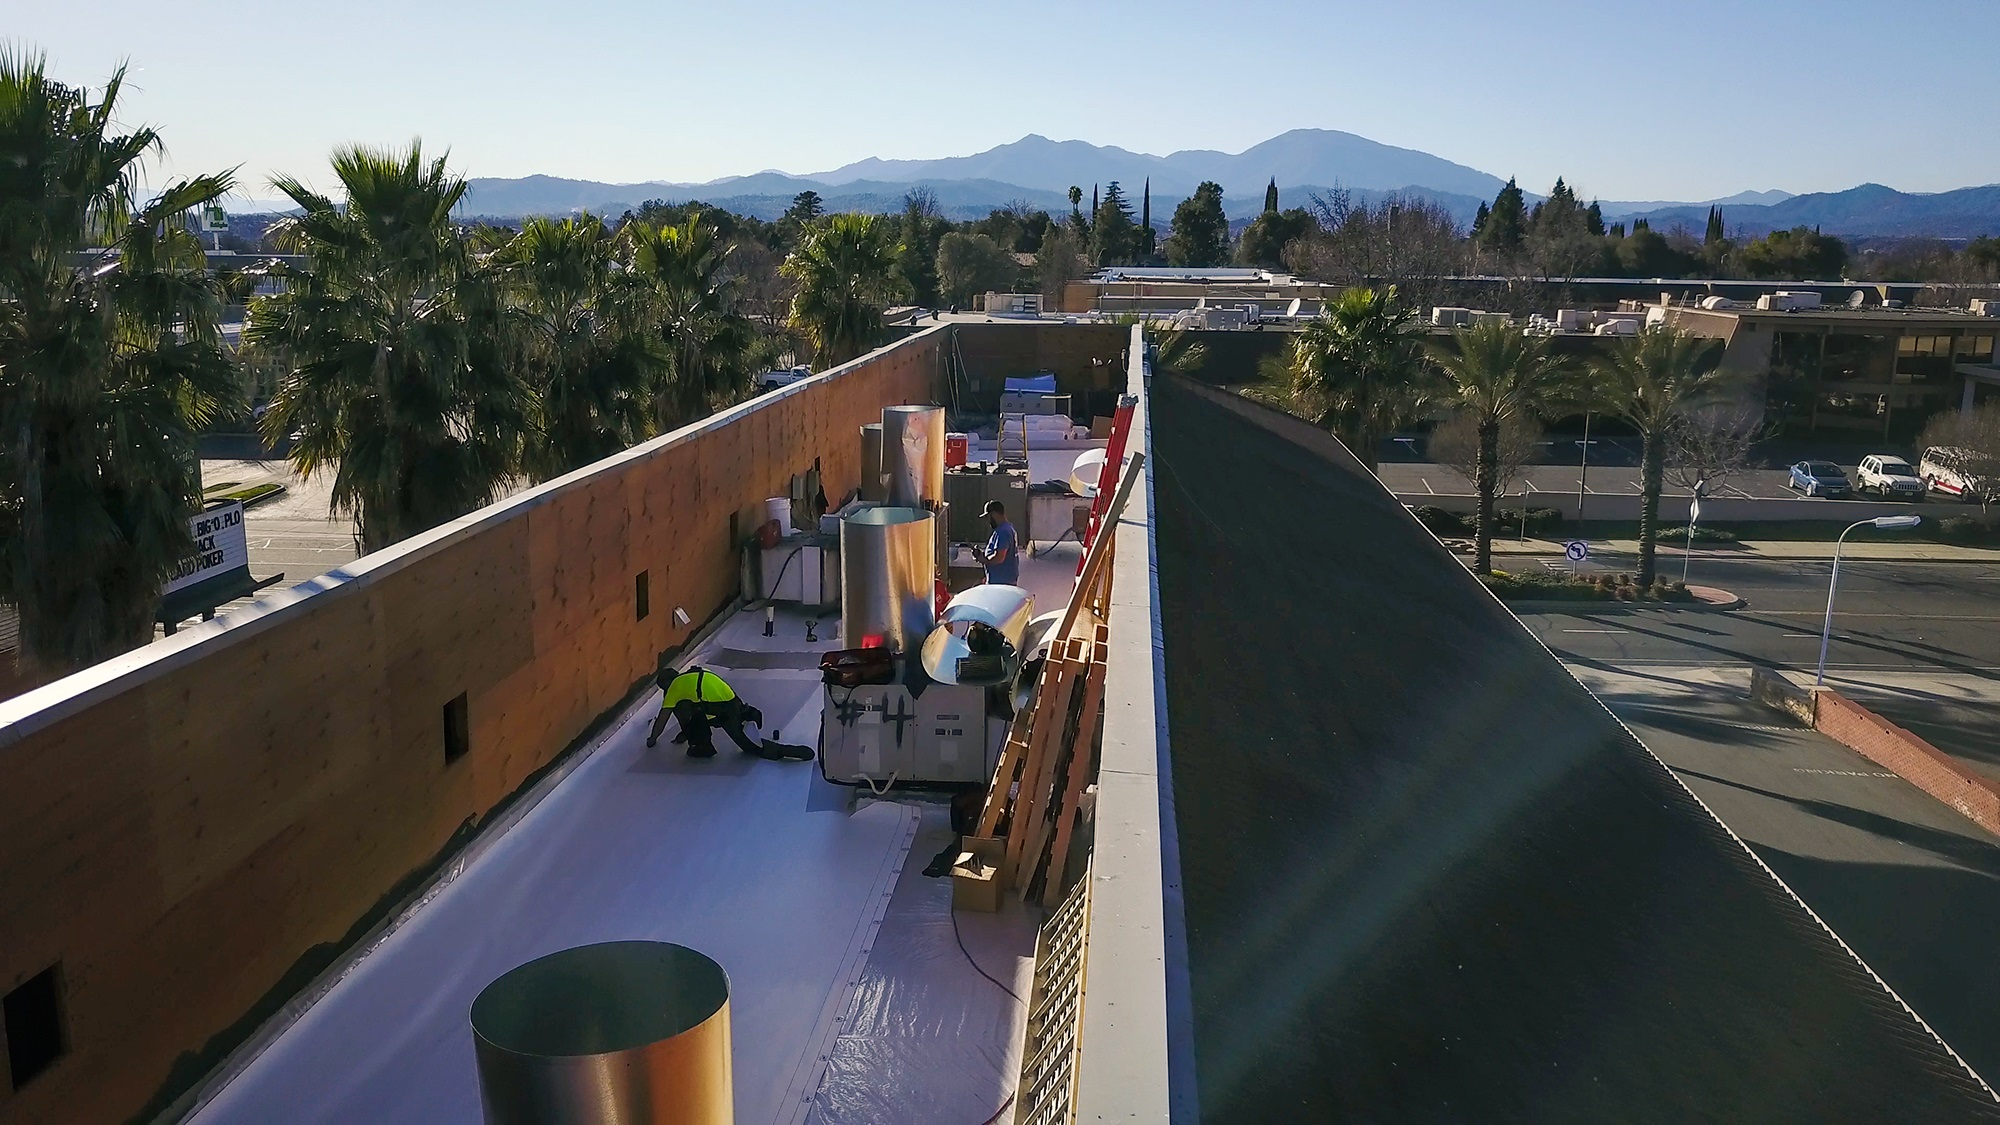 Boster Roofing image 10